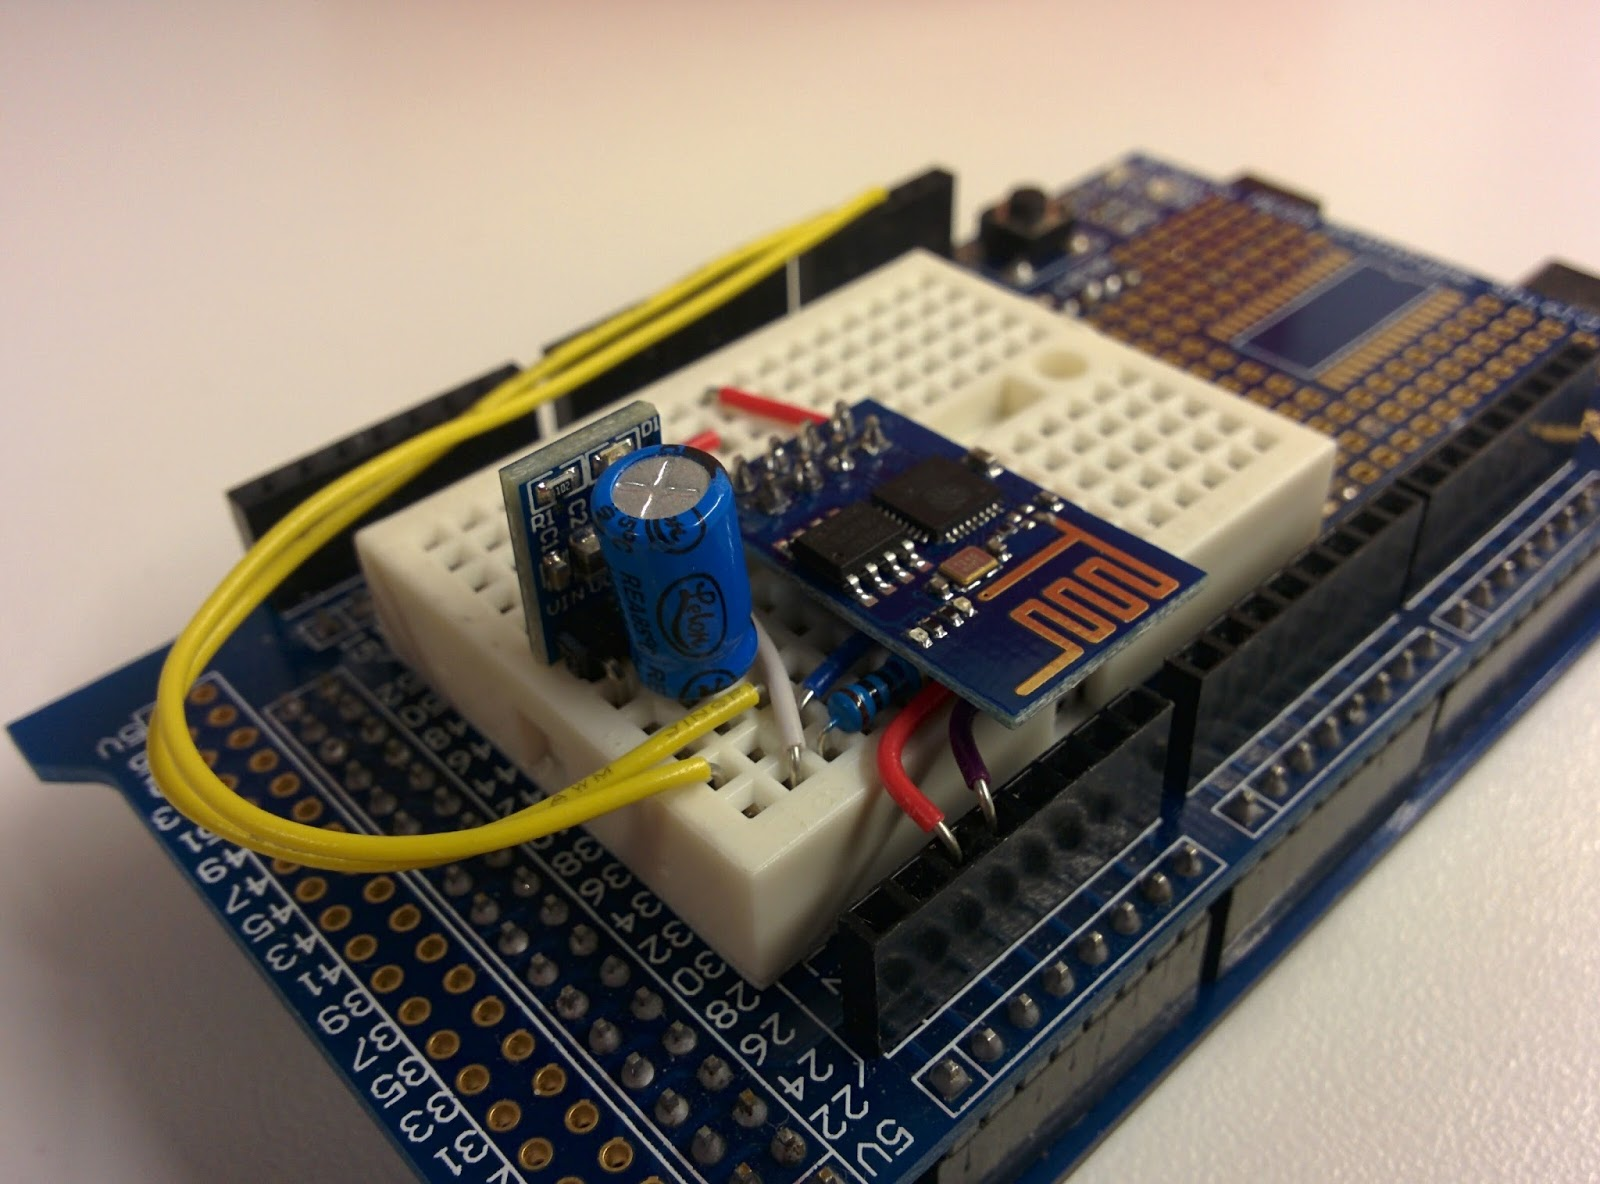 Cheap Arduino WiFi Shield with ESP8266-01 - Yet Another